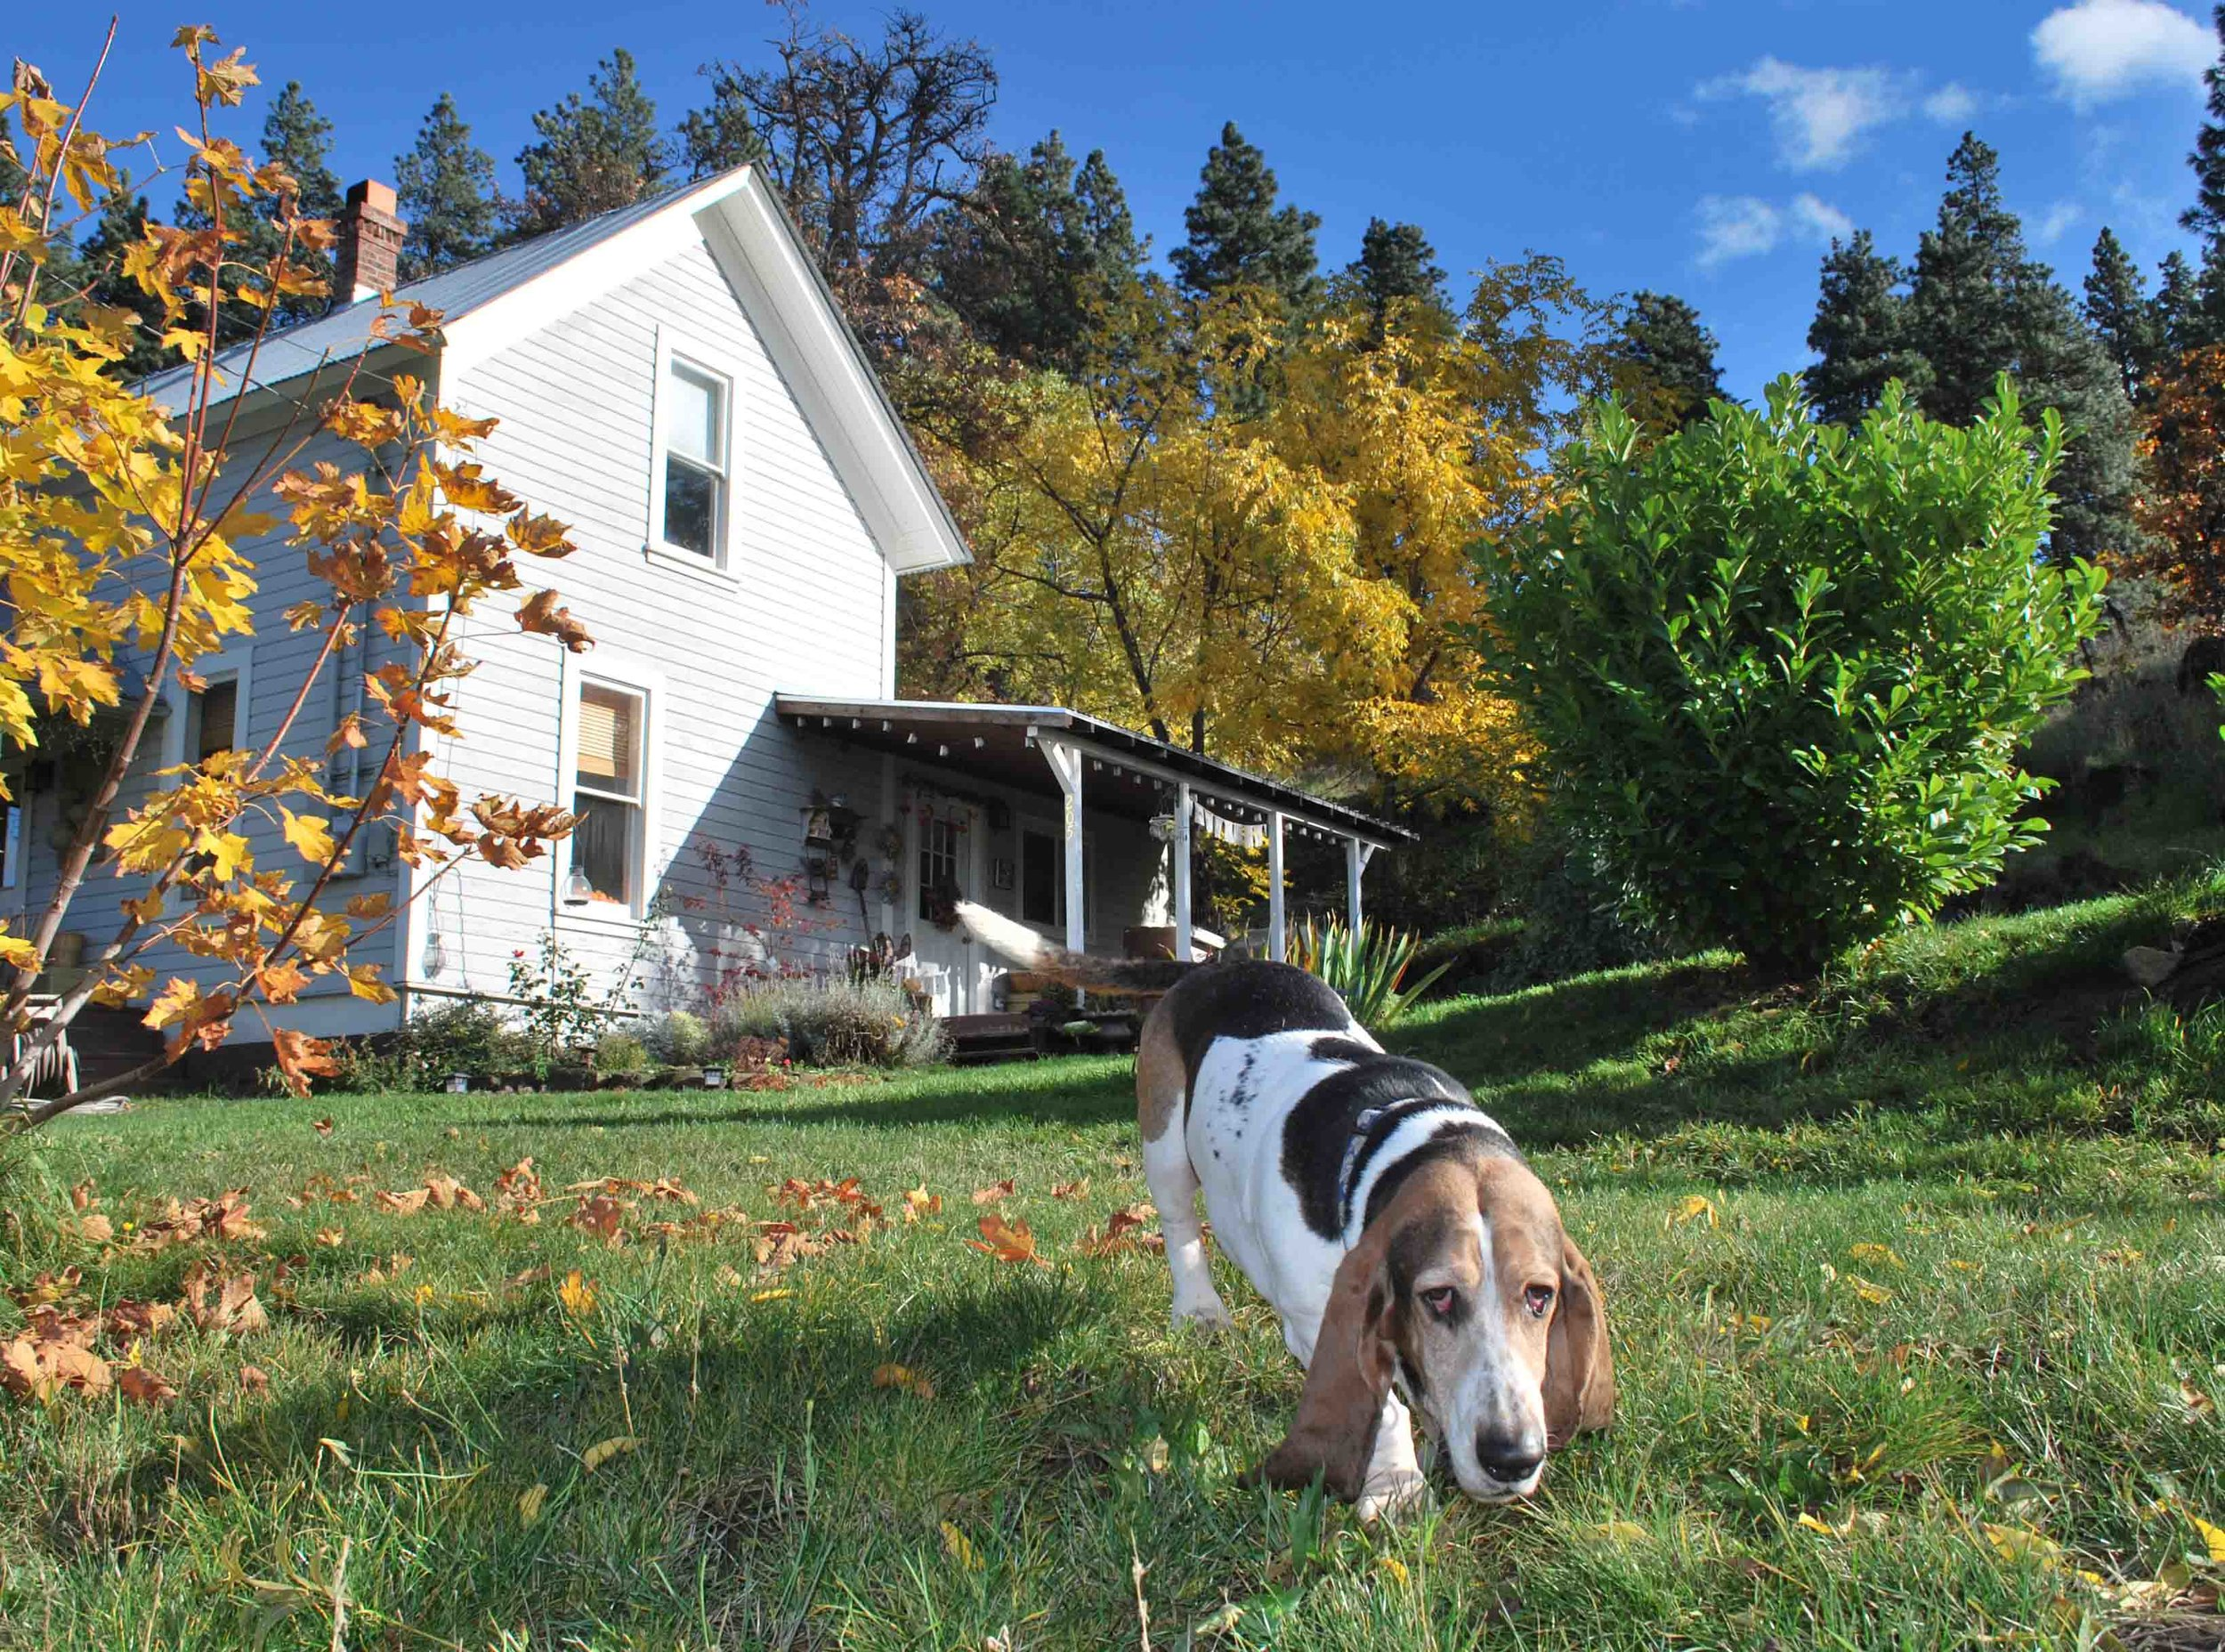 Elvis, my basset hound son in the yard. RIP old friend.Photo: (c) Barb Ayers, DogDiary.org